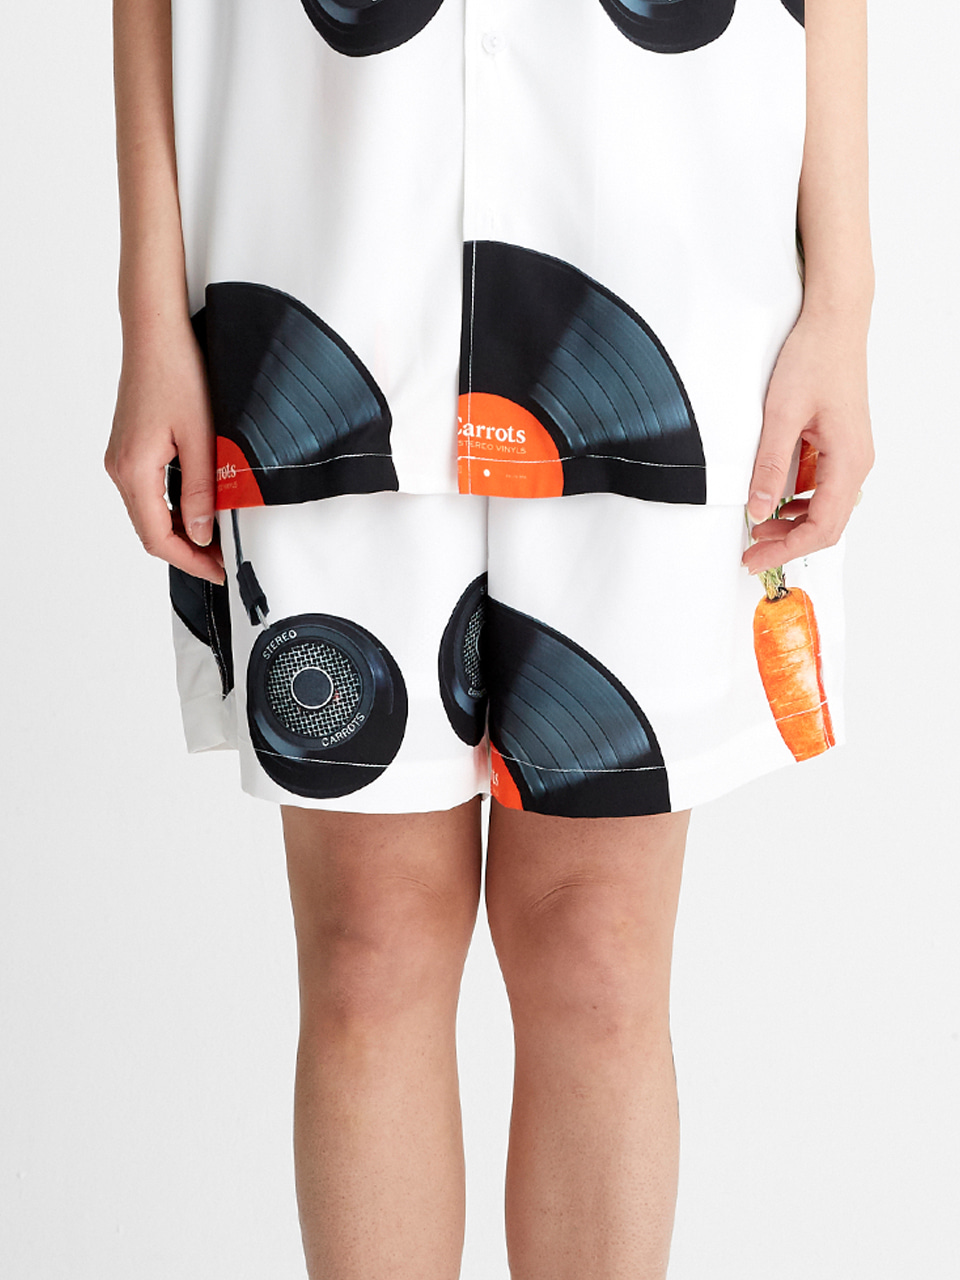 [SS20 SV X Carrots] Carrots Pattern Short Pants(White) STEREO-SHOP